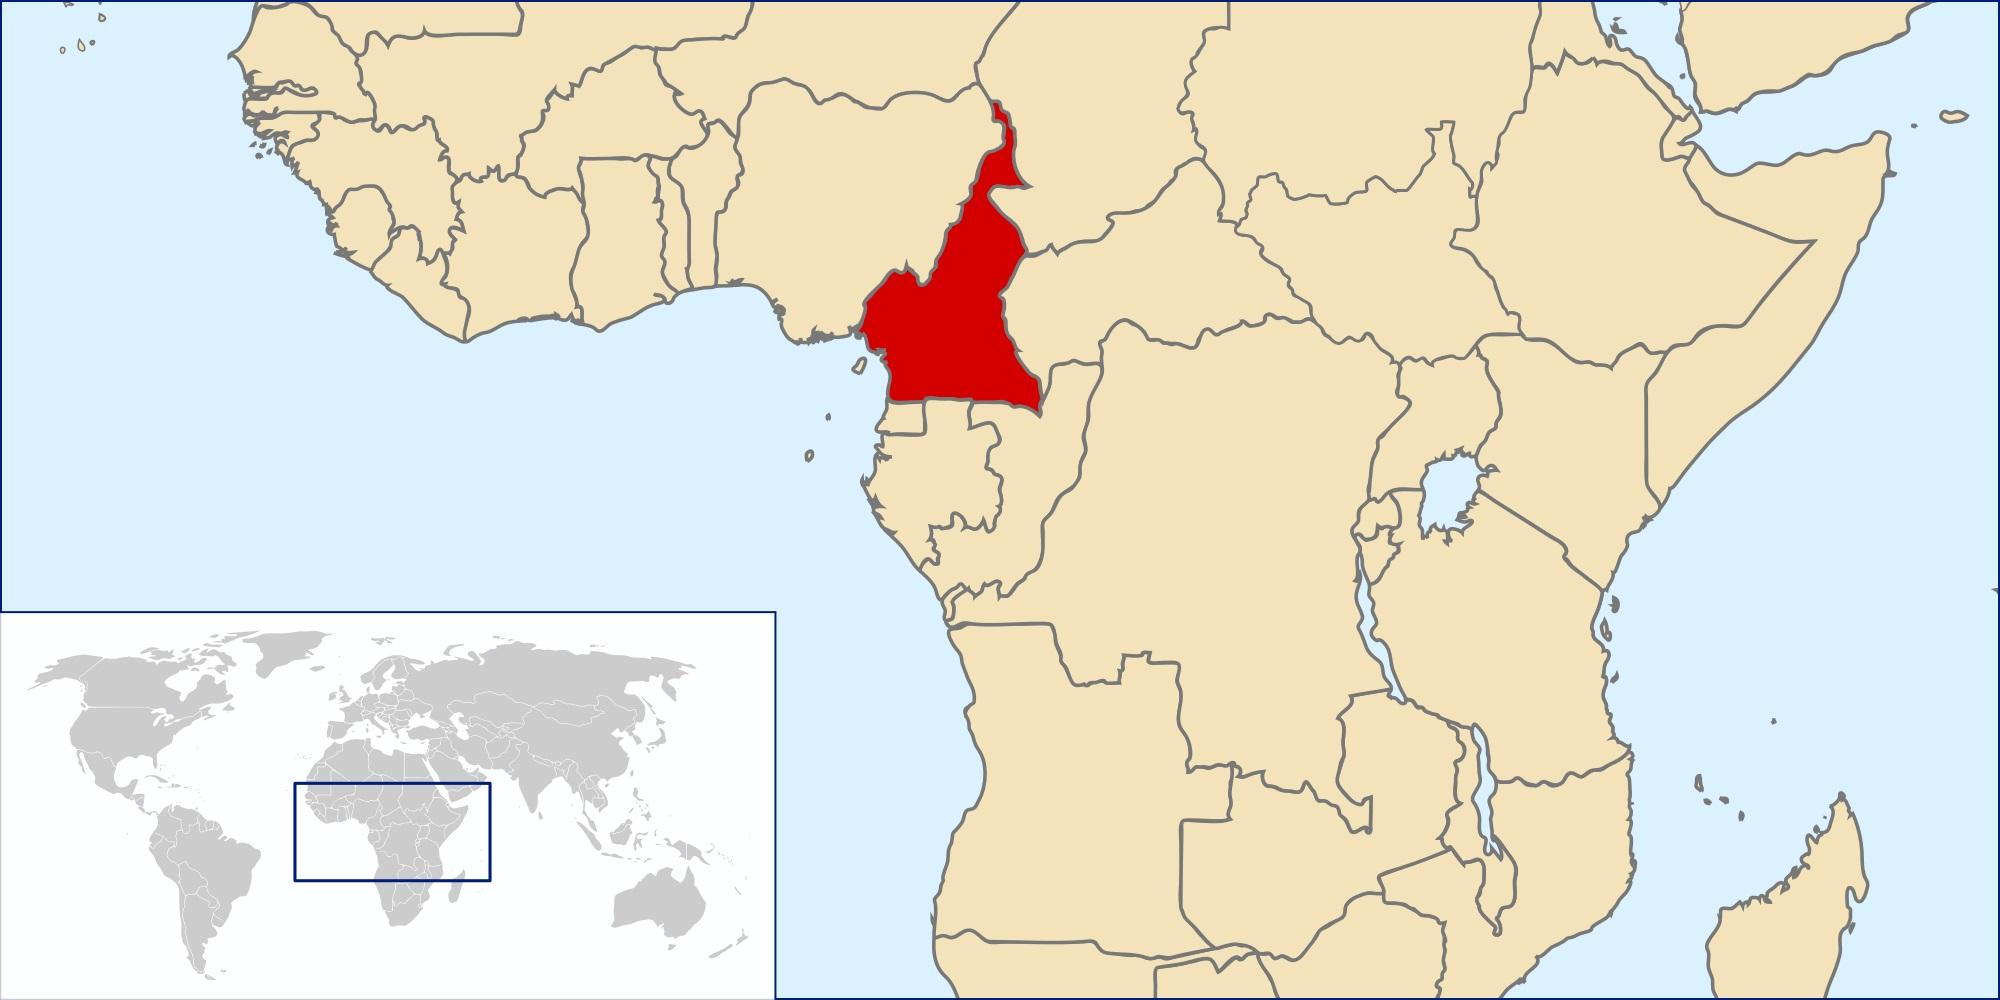 Cameroon on world map - Cameroon location on world map (Middle ...